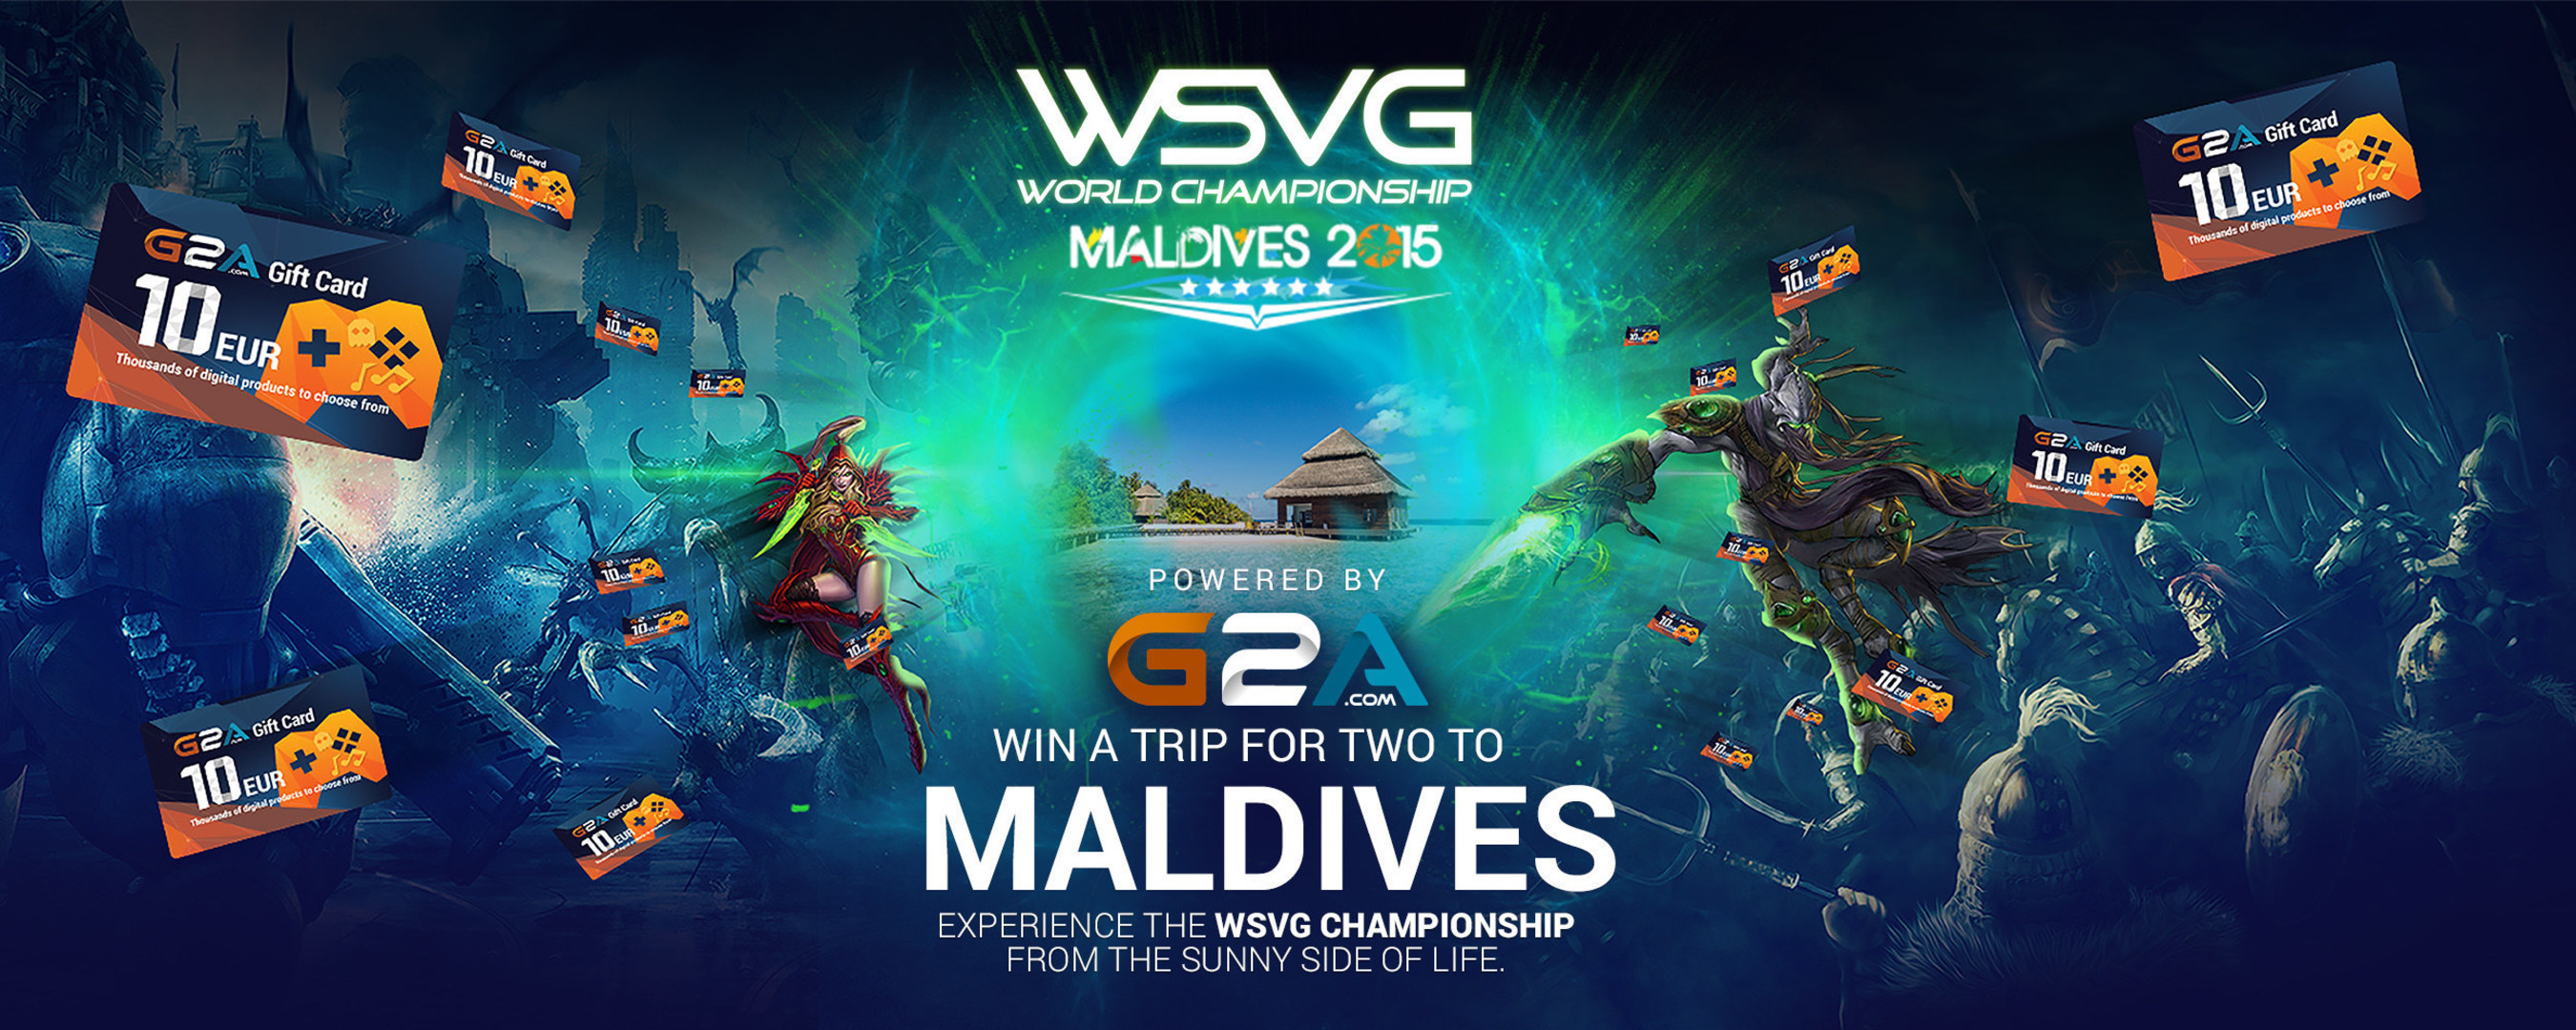 G2A - win a trip for two to WSVG World Championship 2015 in Maldives (awesome Indian ocean holiday Islands). ...